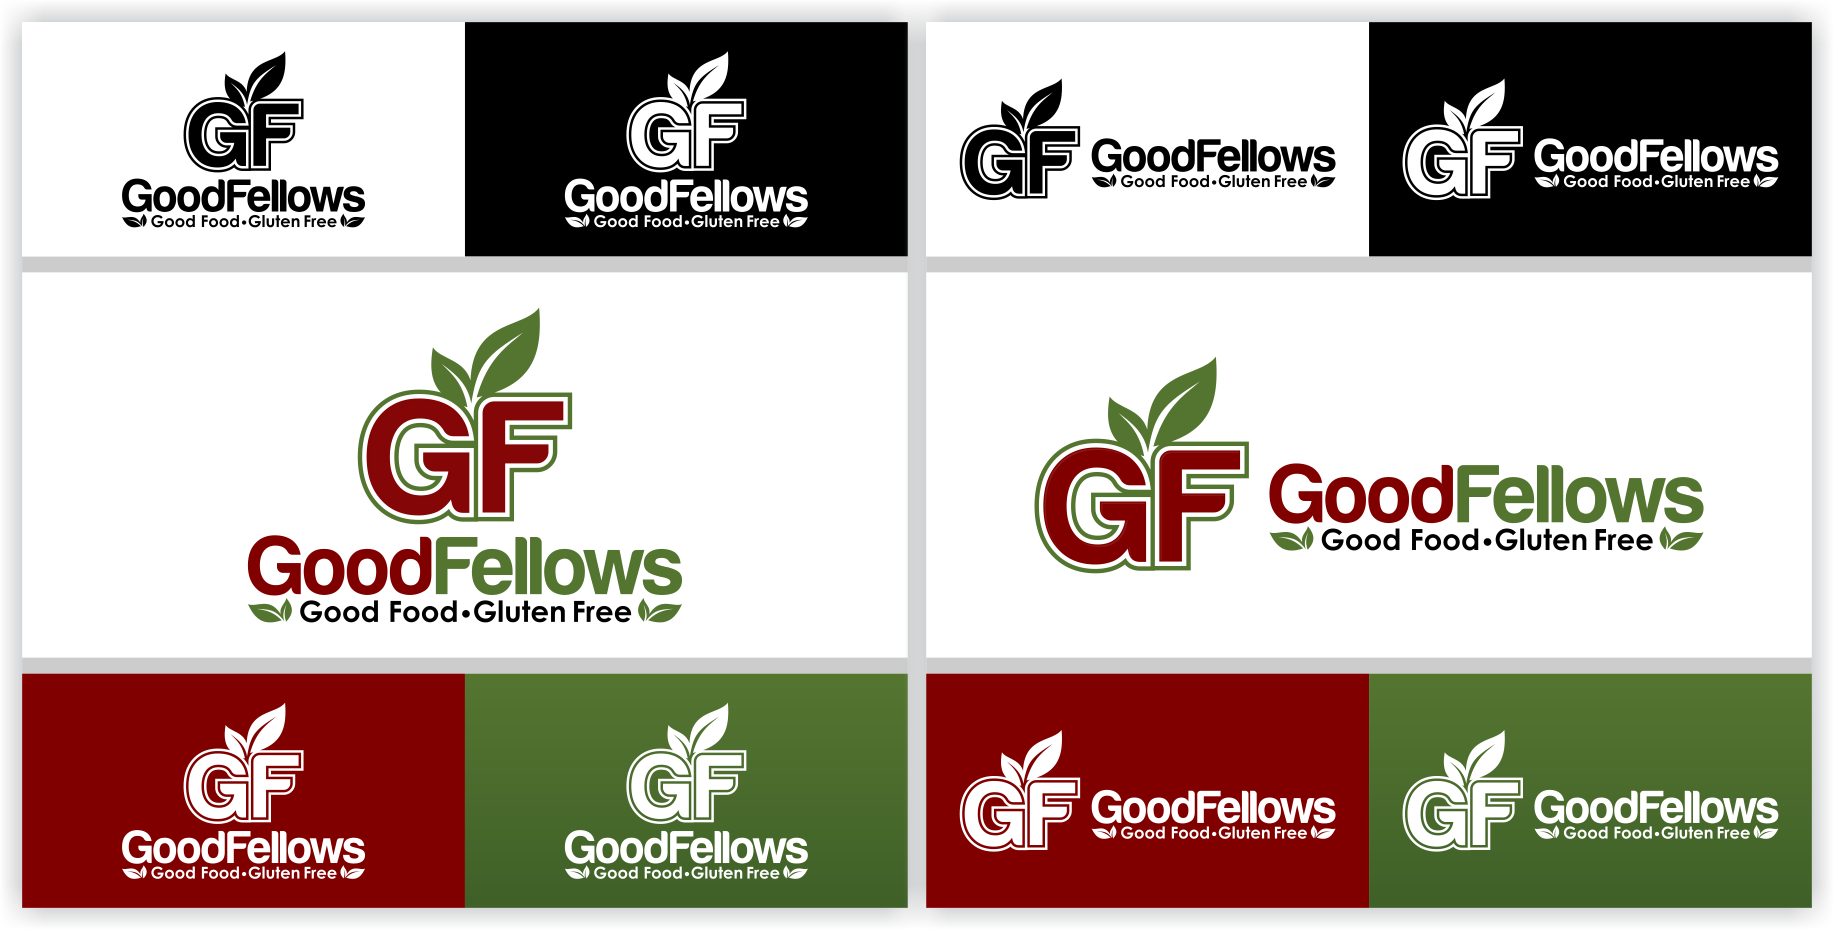 New logo wanted for GoodFellows